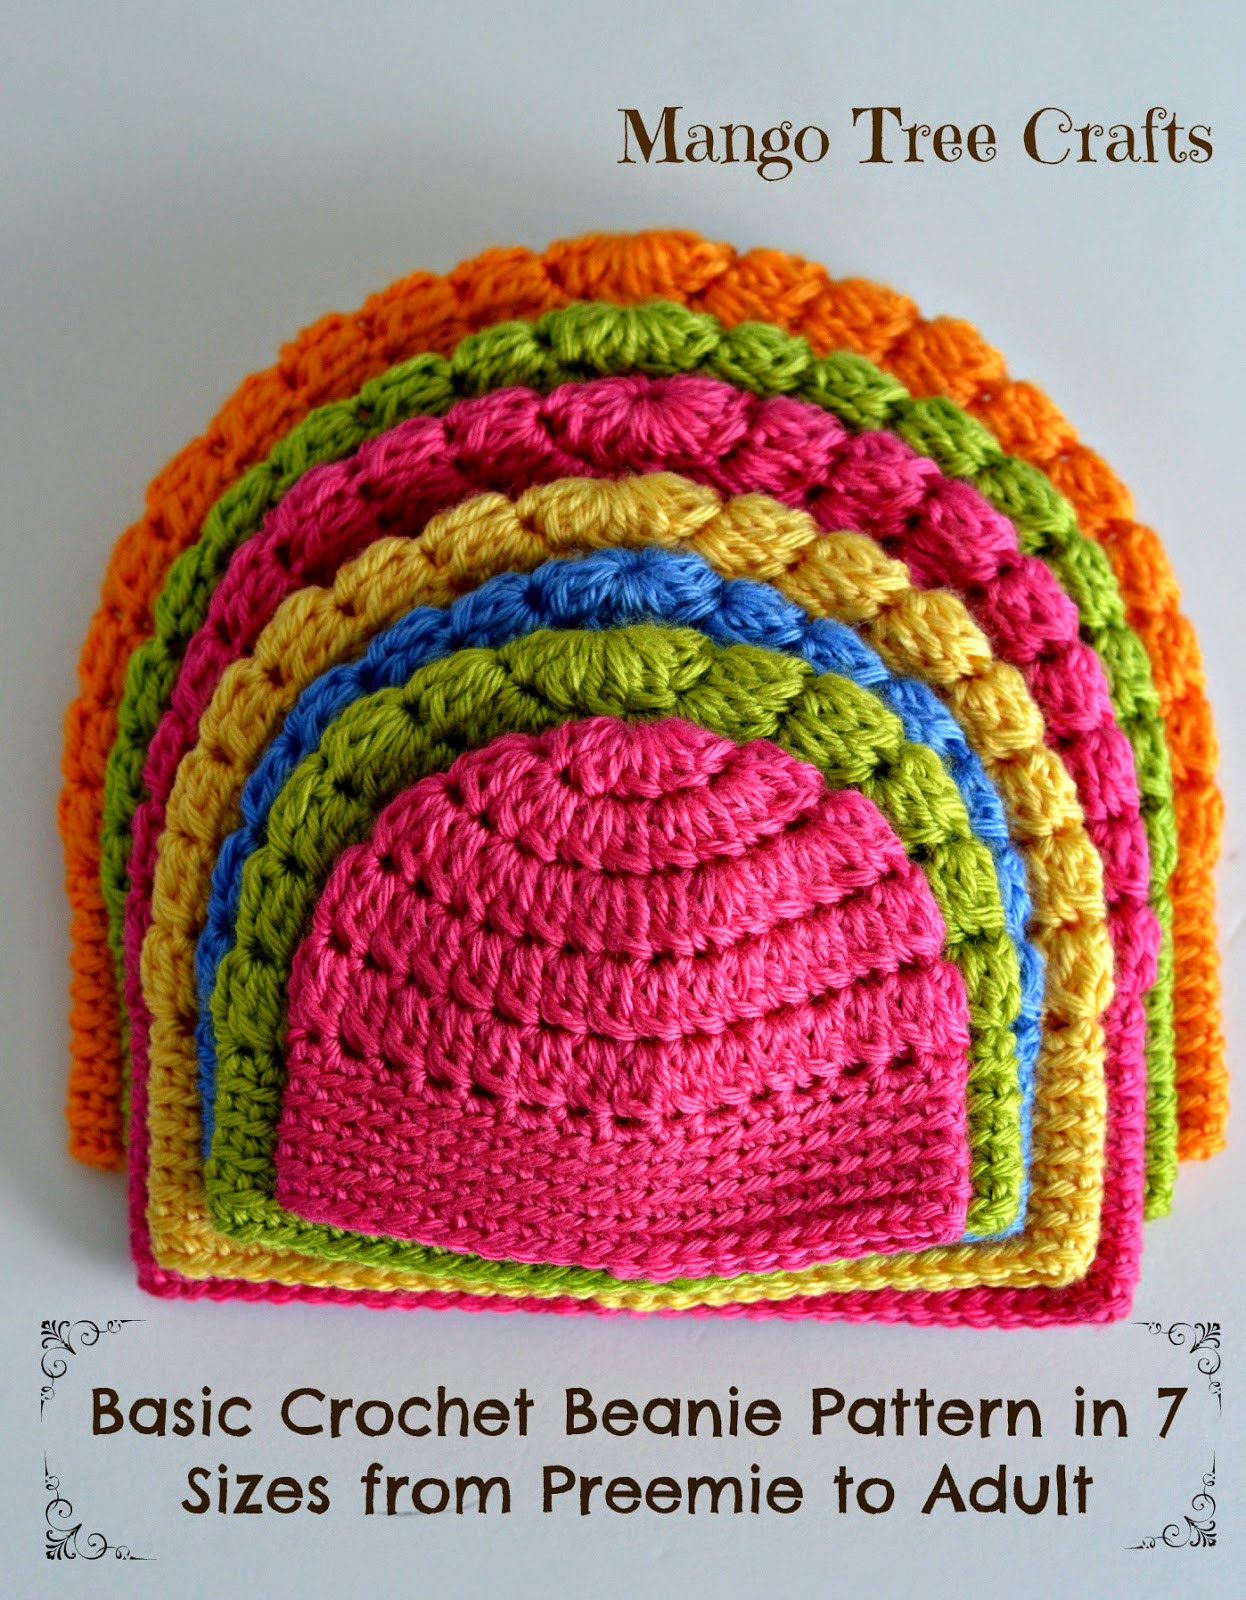 Crochet Beanie Pattern Lovely Free Basic Beanie Crochet Pattern All Sizes Of Luxury 43 Pics Crochet Beanie Pattern